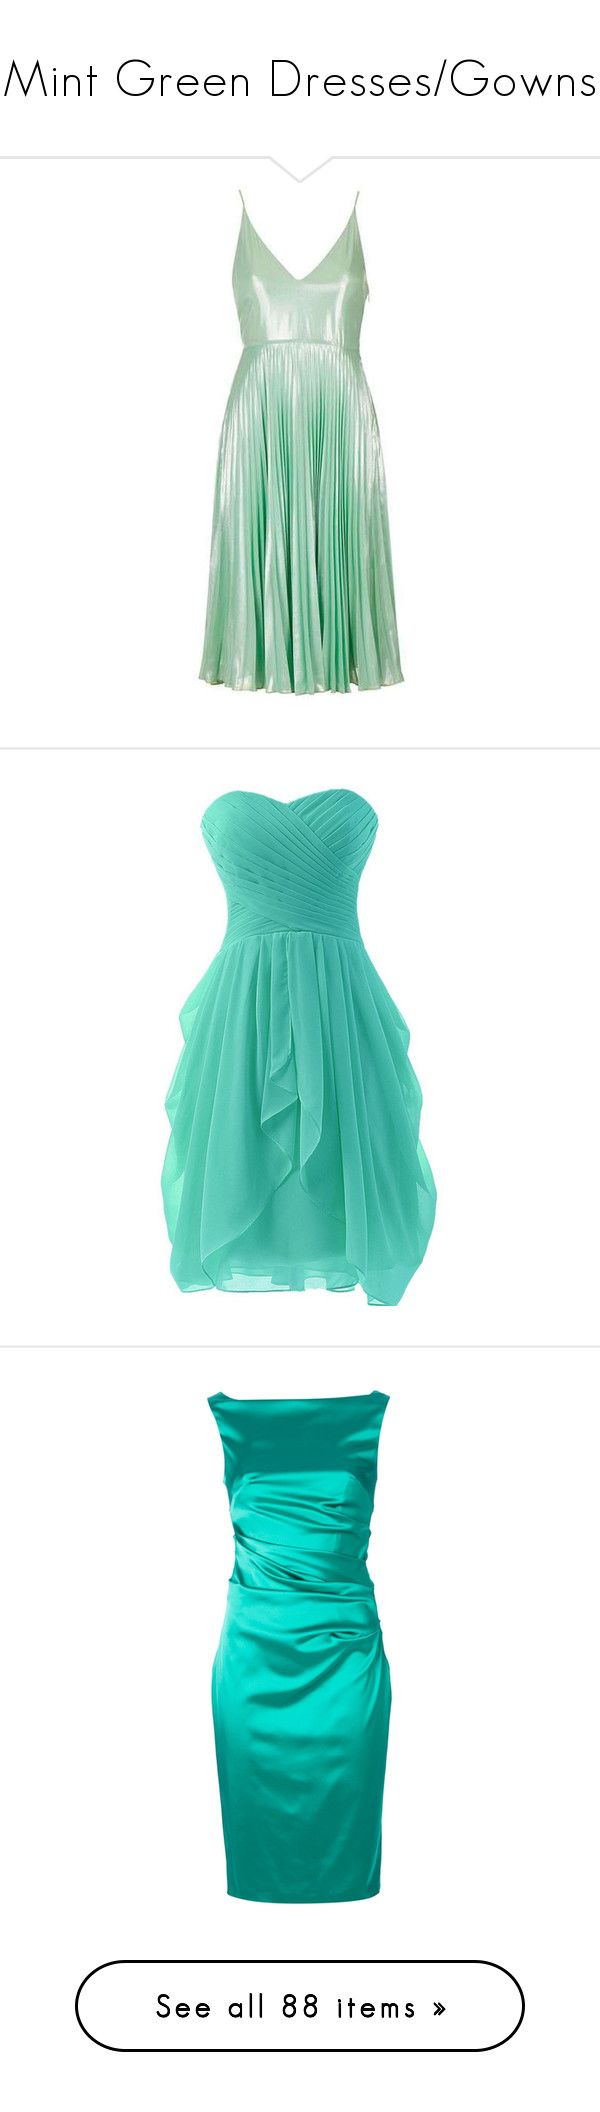 """Mint Green Dresses/Gowns"" by mintvelvetveins ❤ liked on Polyvore featuring dresses, topshop, vestidos, prom dresses, metallic cocktail dress, plunging neckline cocktail dress, midi prom dress, midi cocktail dress, short ruched dress and short dresses"